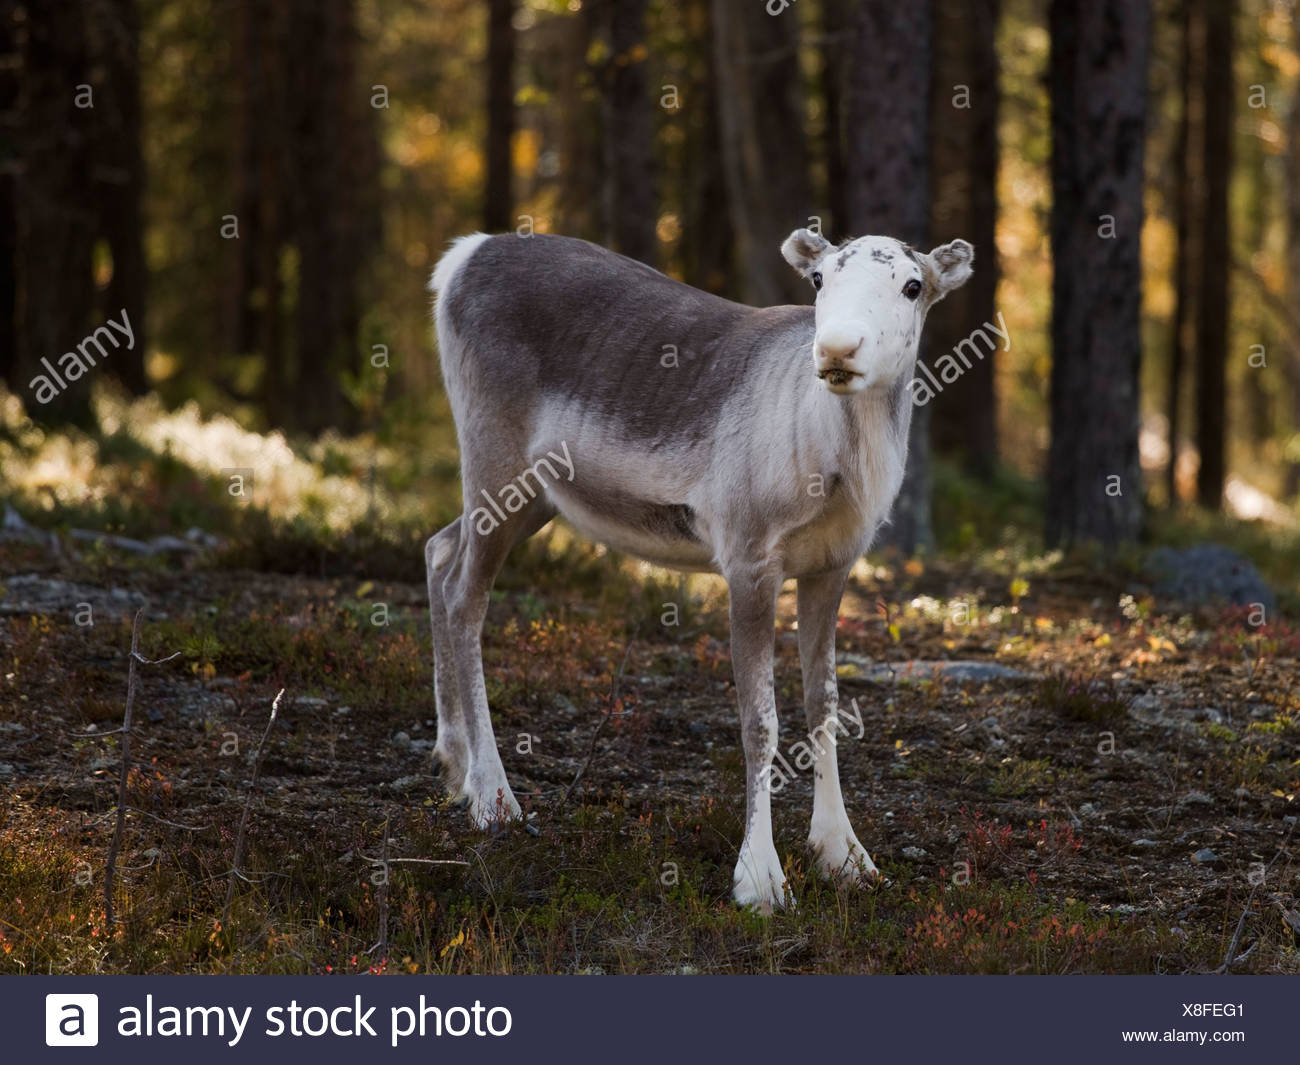 Reindeer in the forest - Stock Image